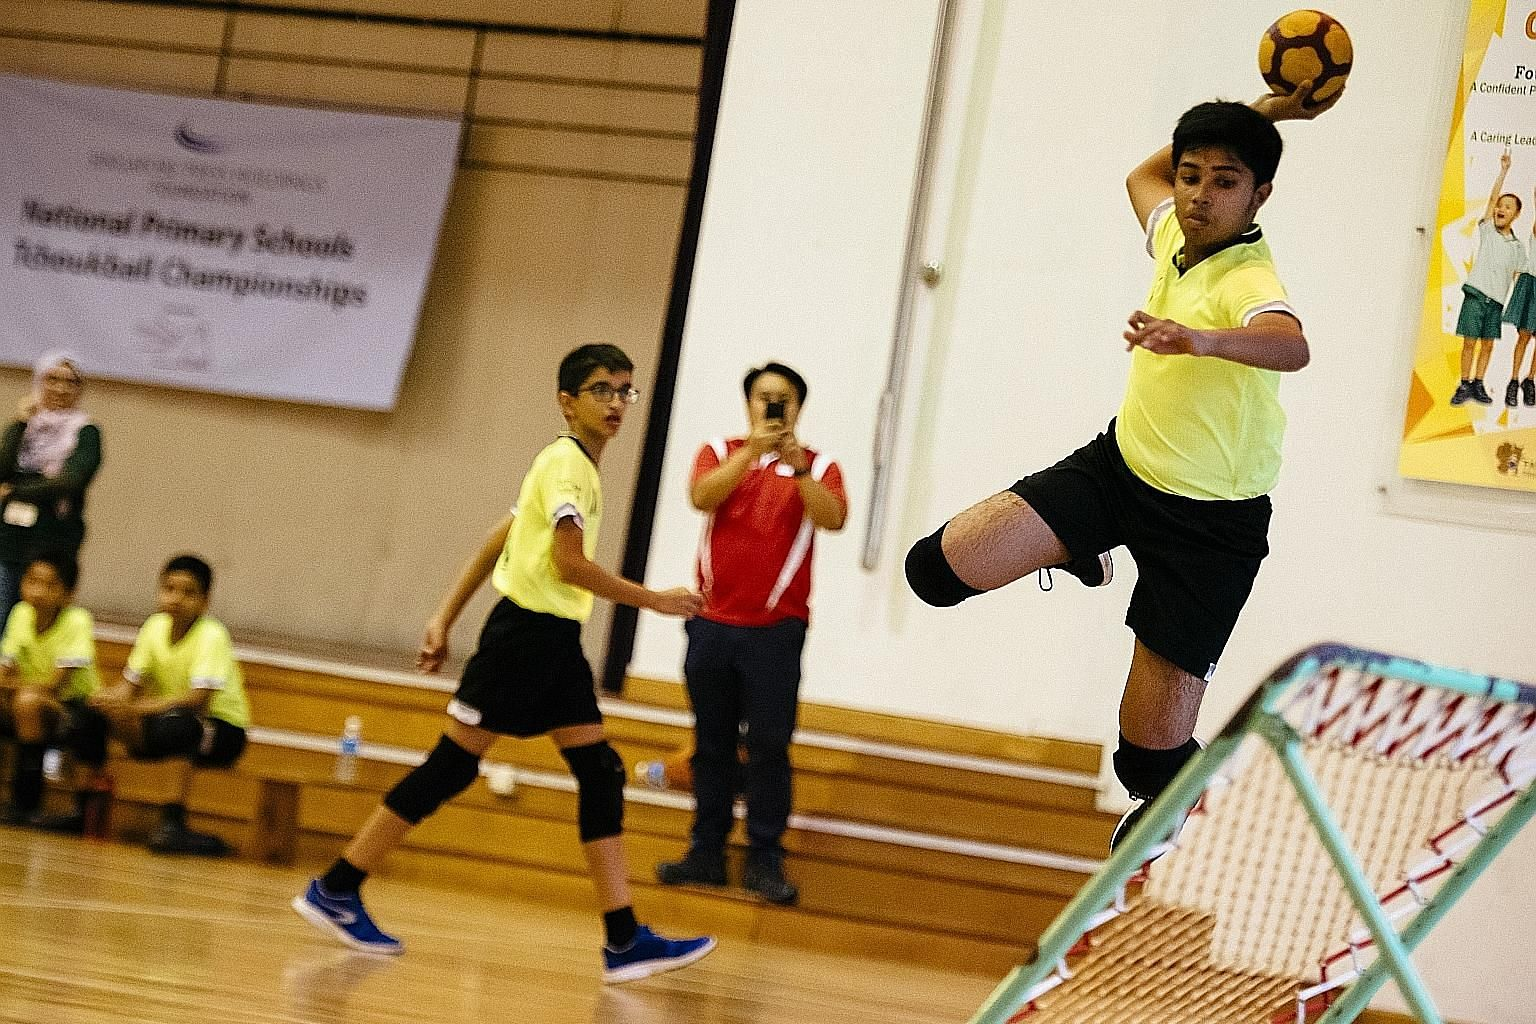 Farrer Park Primary captain Shaik Mohamed Farook scoring a point at the seventh edition of the SPH Foundation National Primary Schools Tchoukball Championships at his school yesterday. Farrer Park took the senior division (13 years and under) boys ti